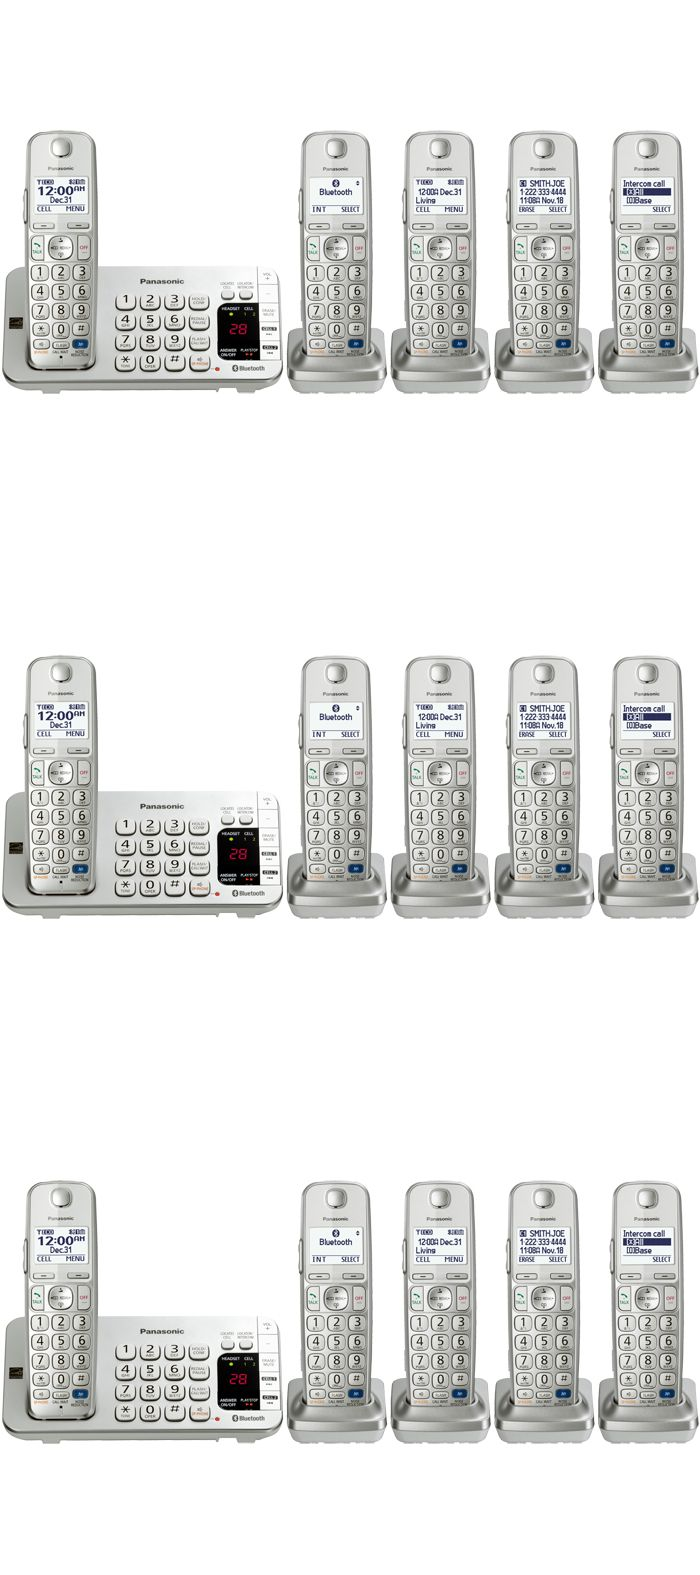 Other Home Telephones: Panasonic Kx-Tgd223n 3 Handset